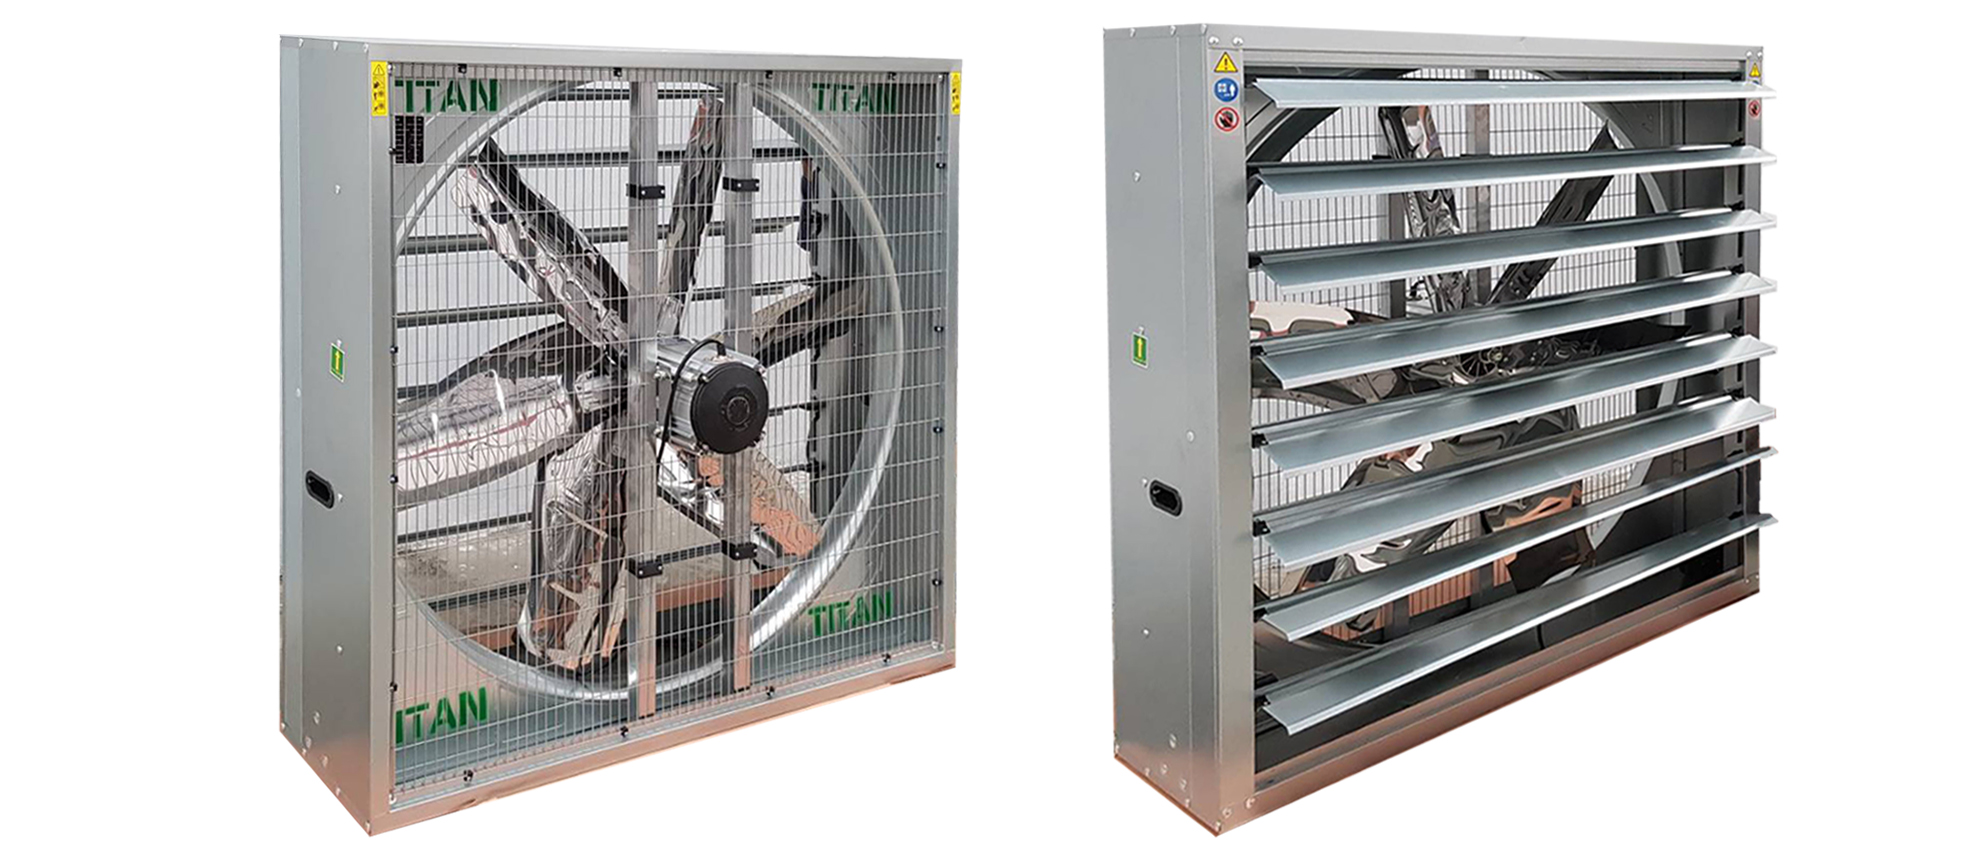 Direct-Drive Exhaust Fans [Hammer-type)